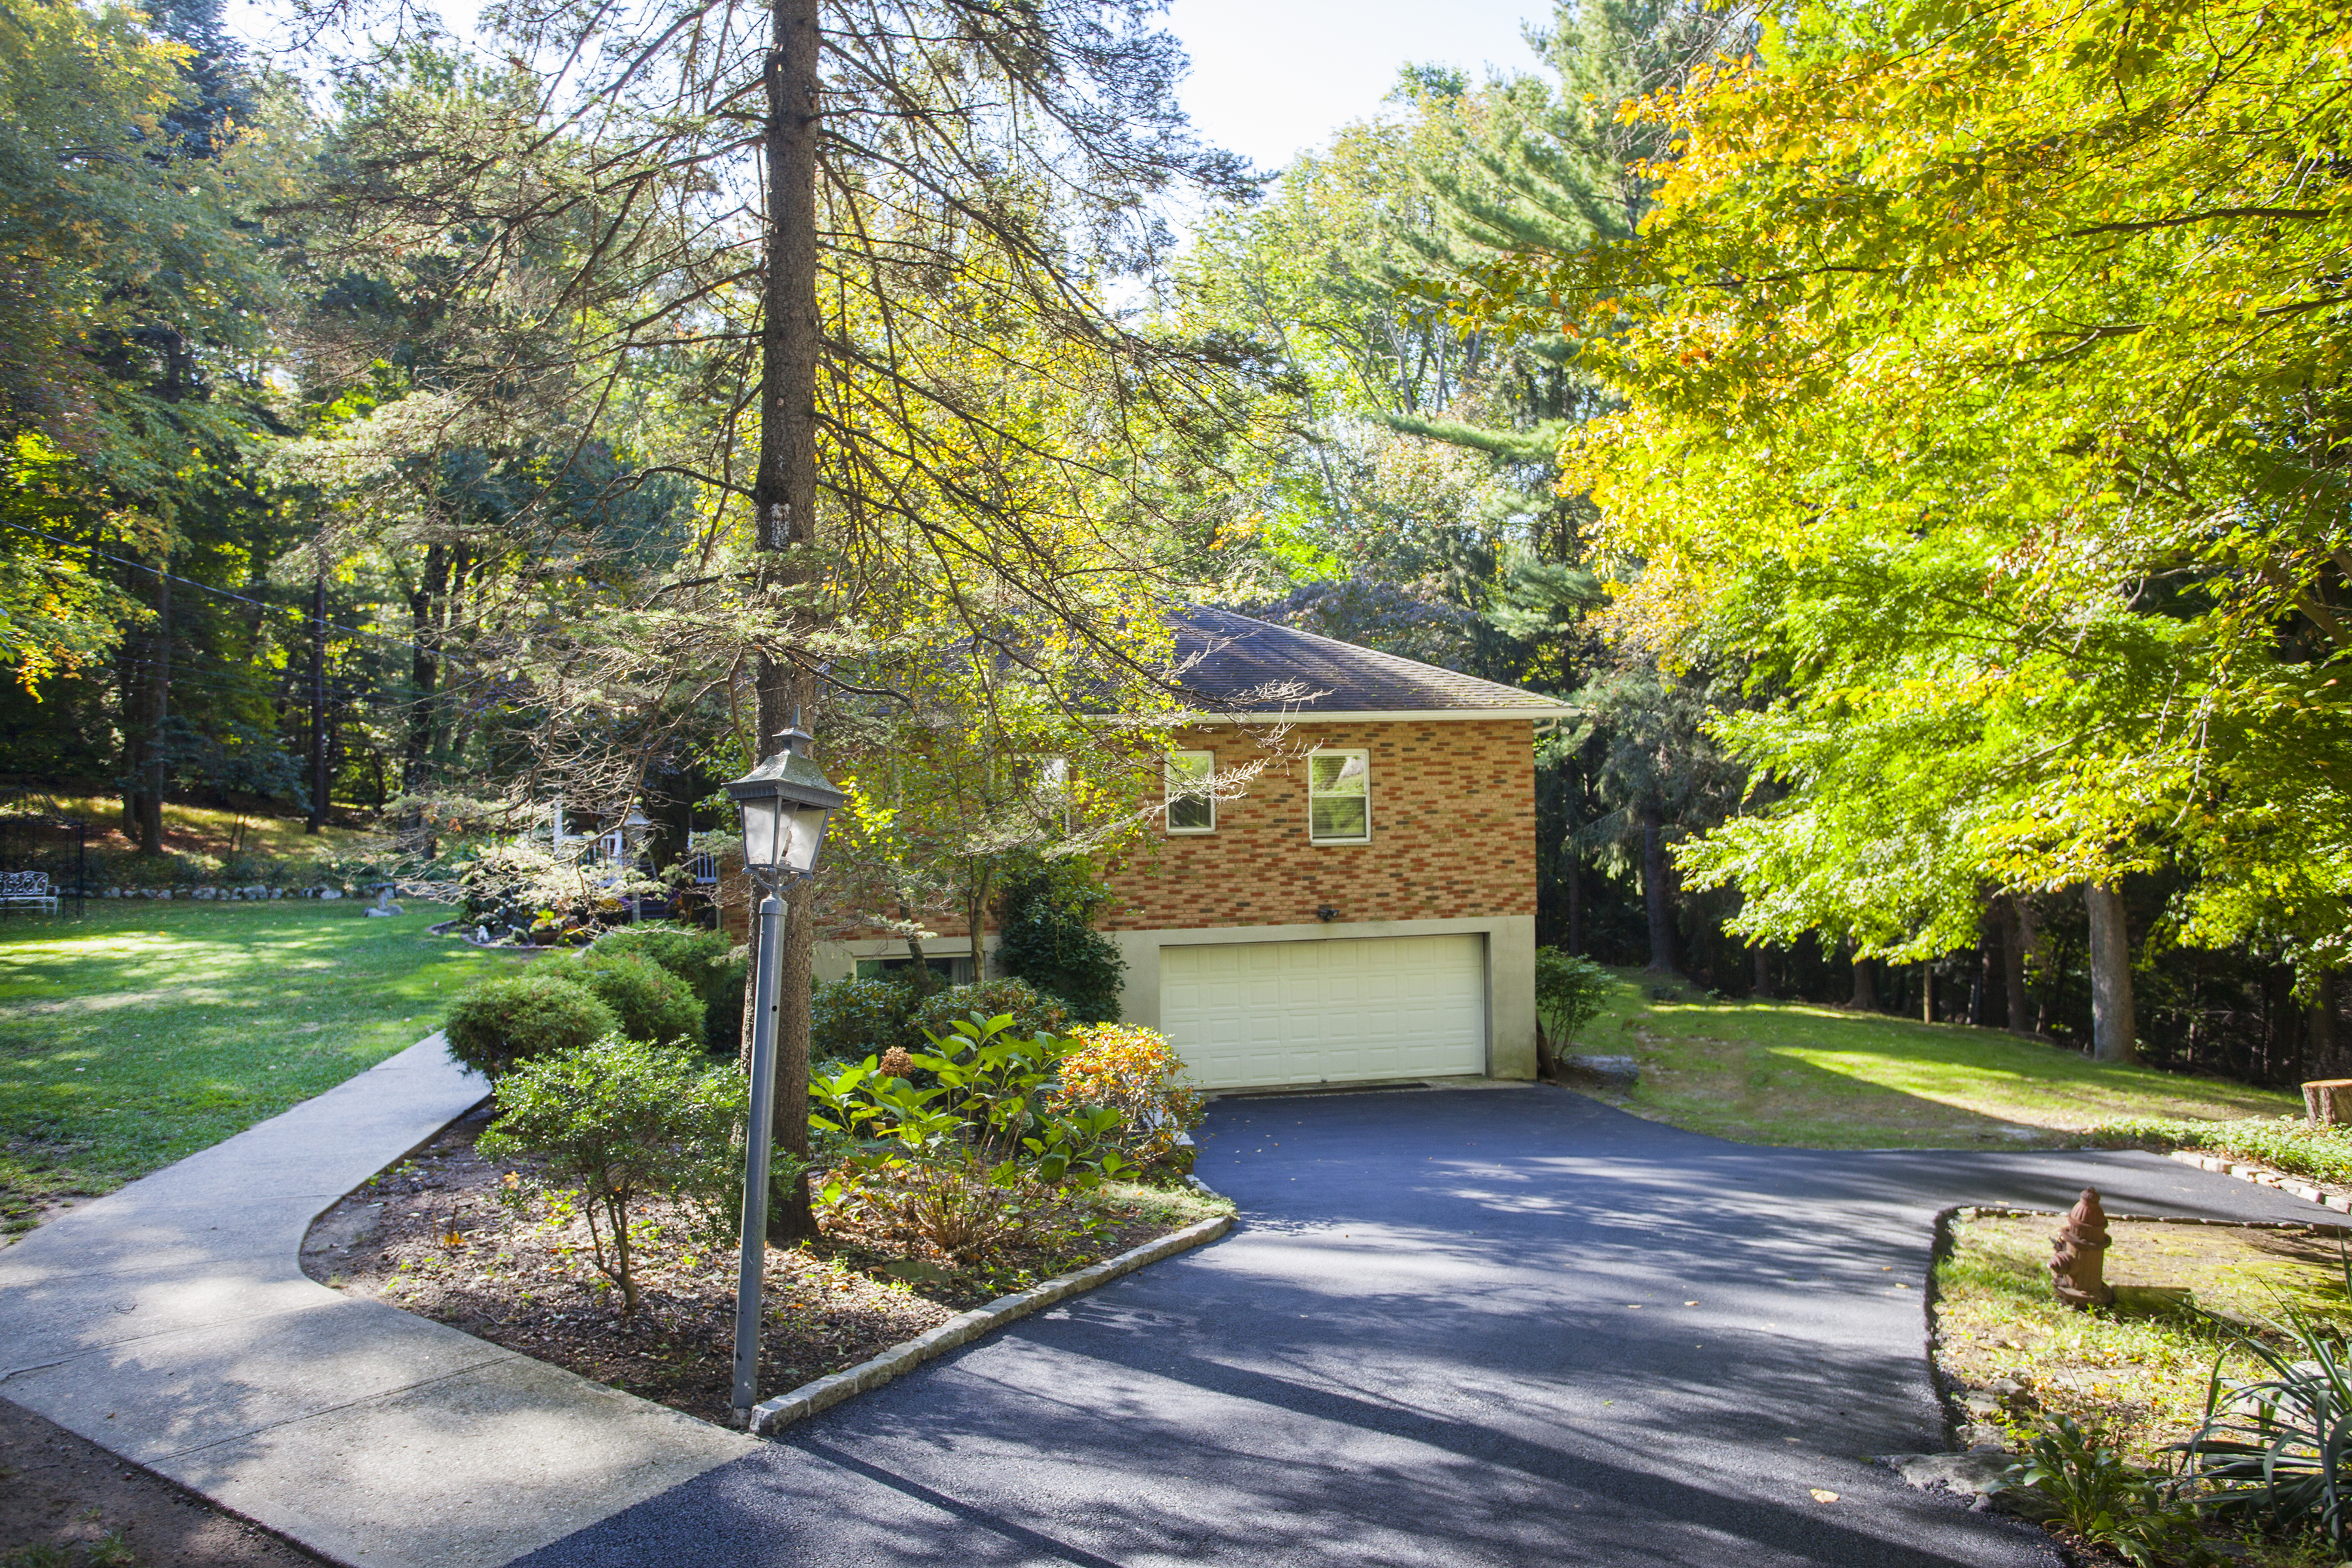 Single Family Home for Sale at New Fairfield's West Side 21 Hudson Drive New Fairfield, Connecticut, 06812 United States